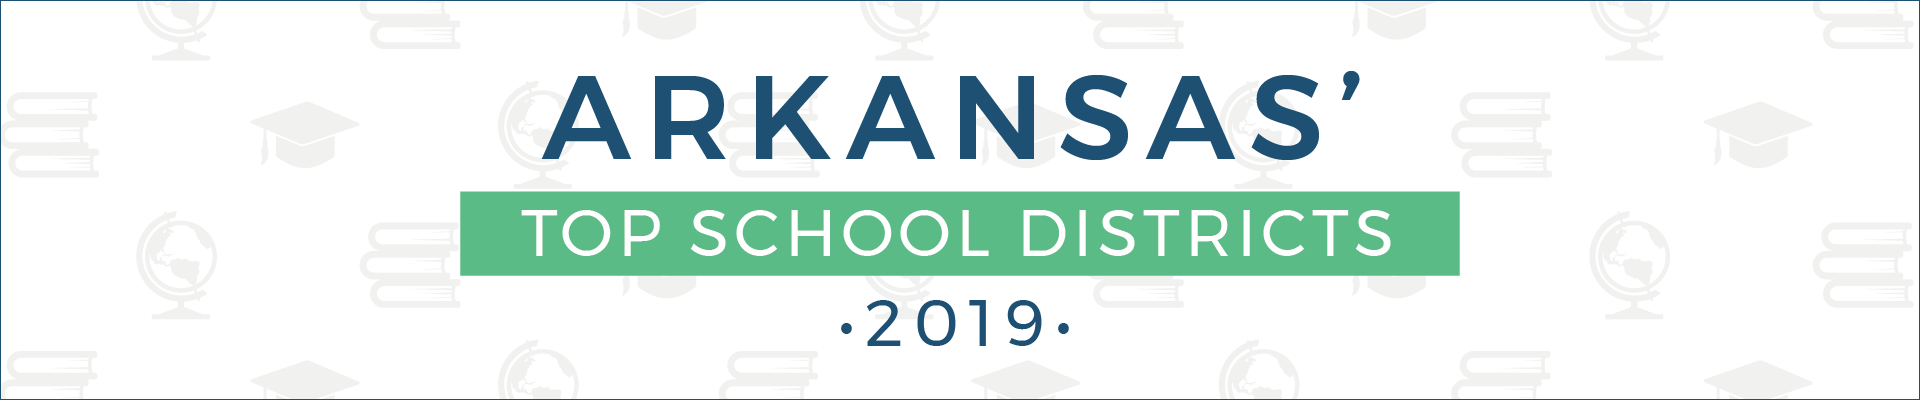 top school districts, 2019 - arkansas